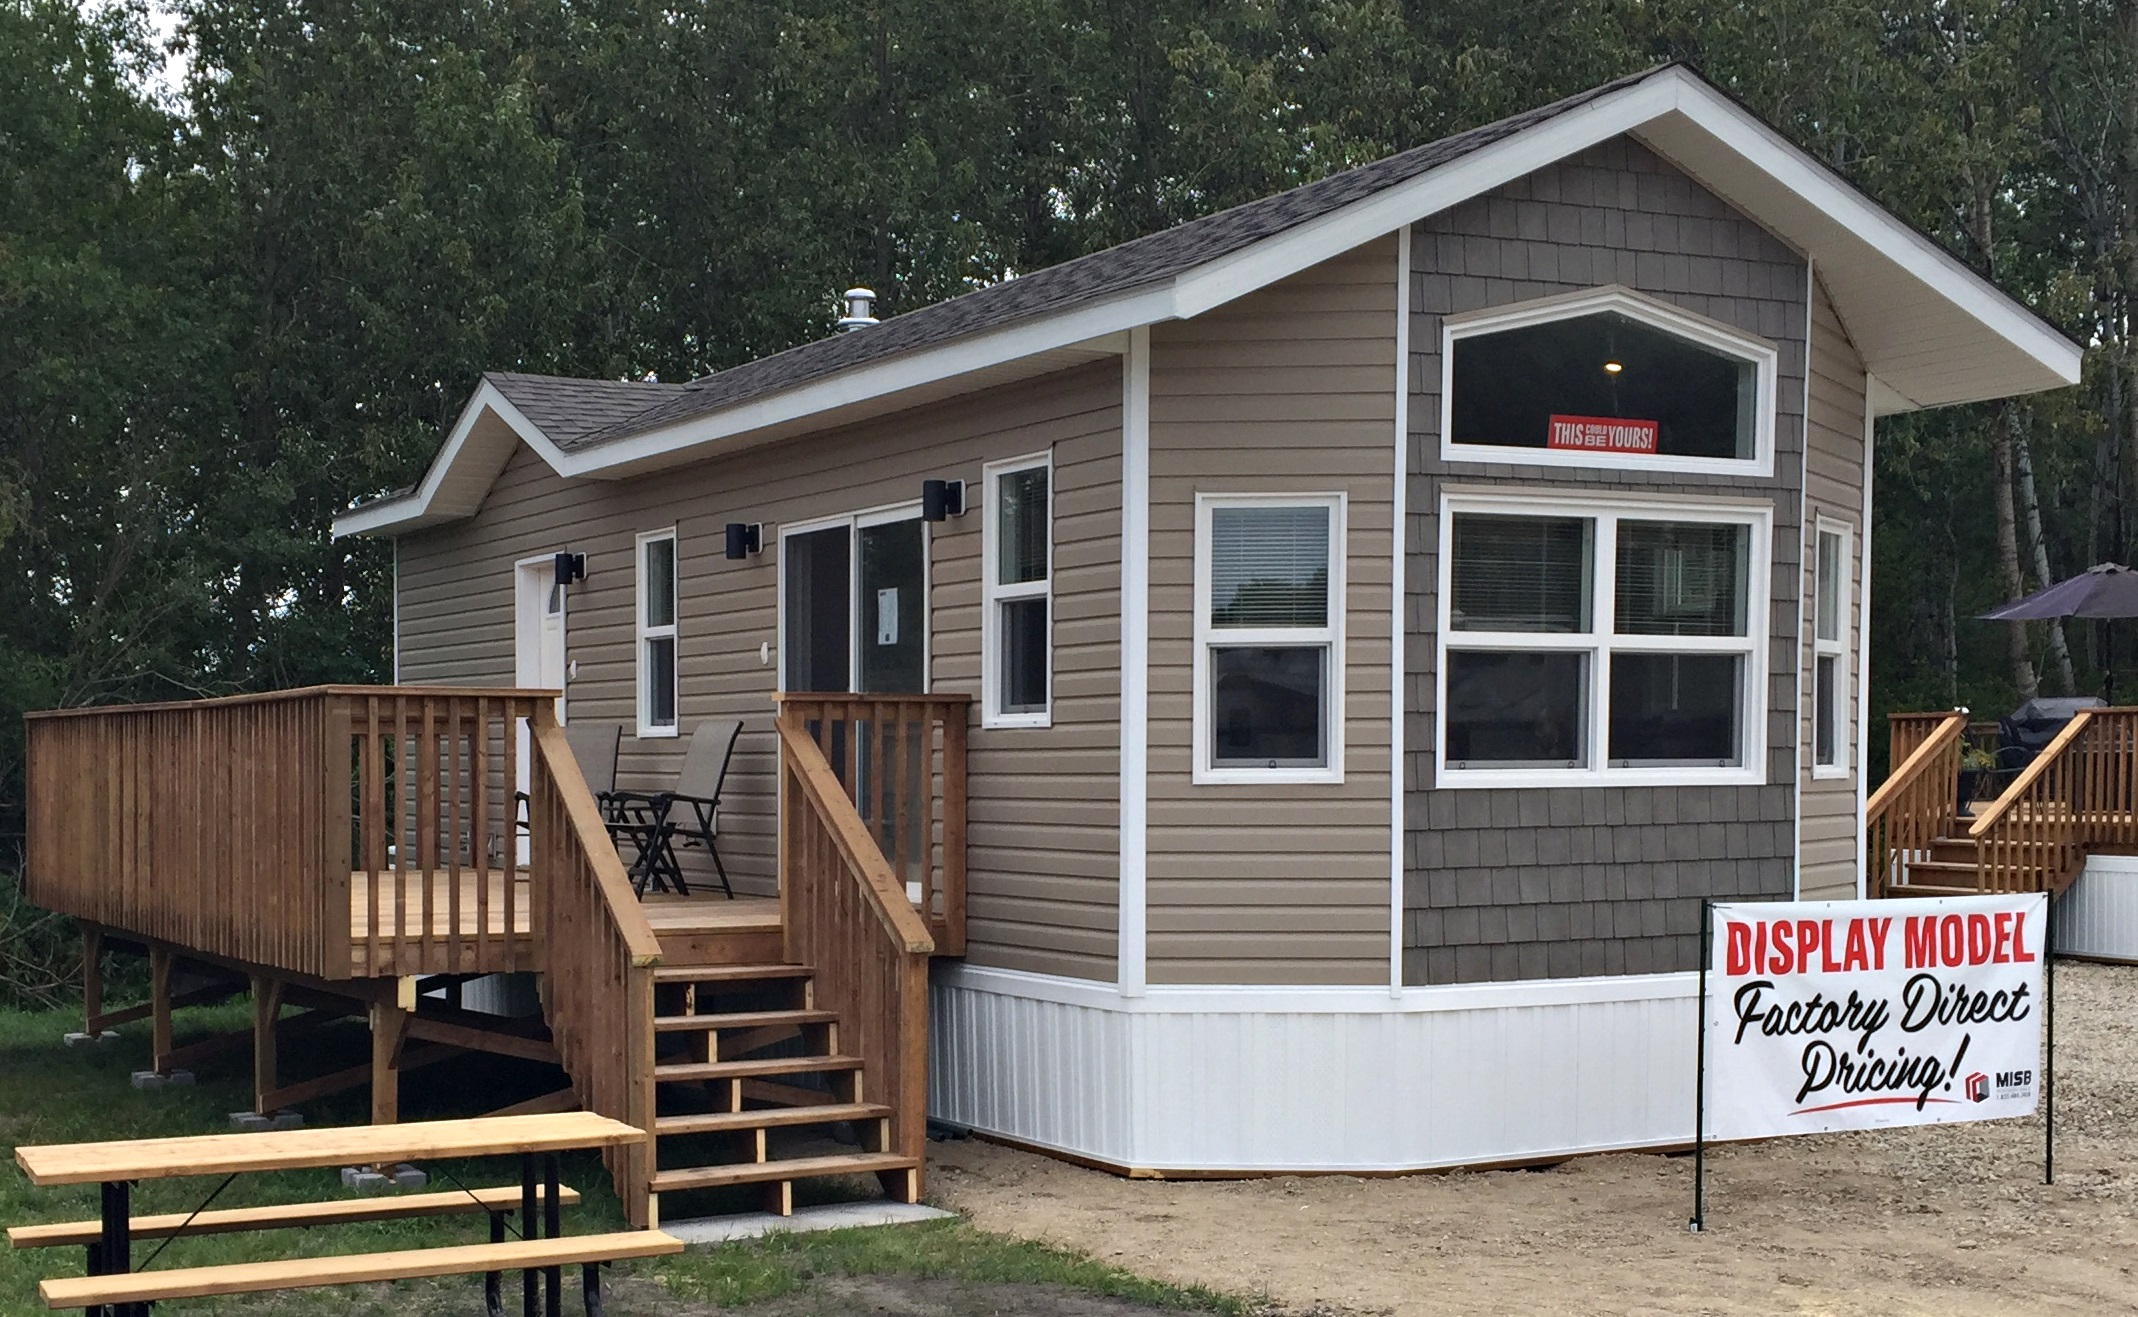 2 Bedroom Park Model Mobile Home. Mobile and Modular Homes   MISB   Modular Industrial Structures